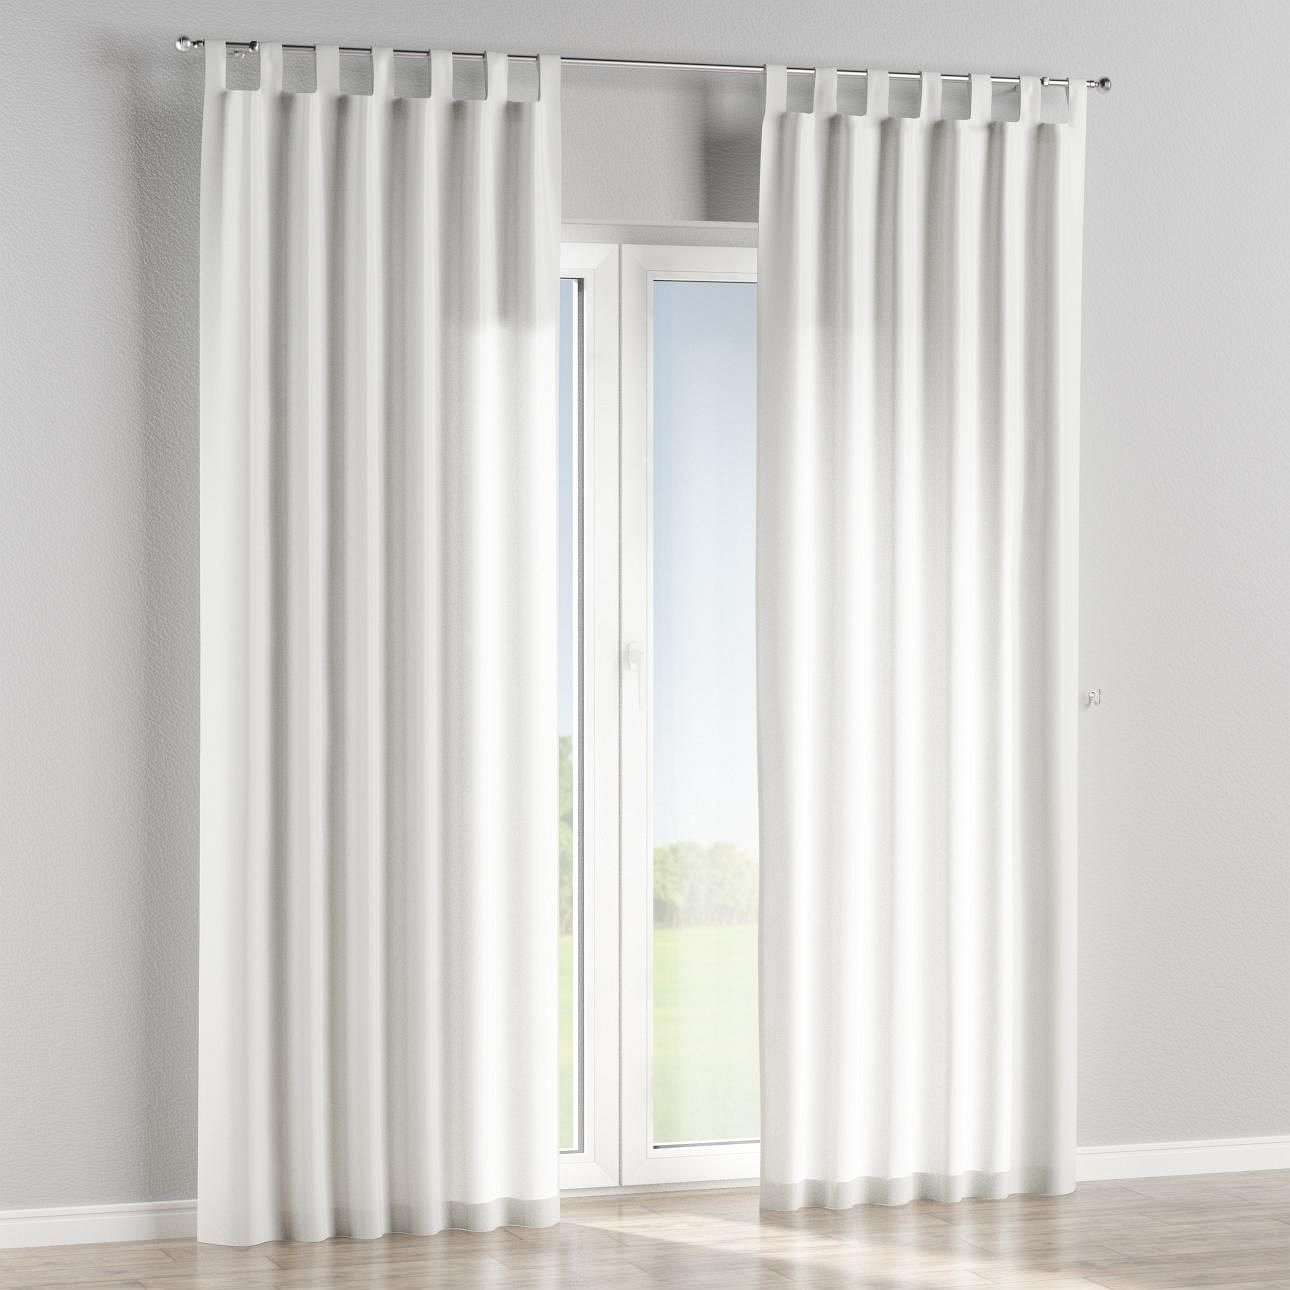 Tab top curtains in collection Rustica, fabric: 138-19